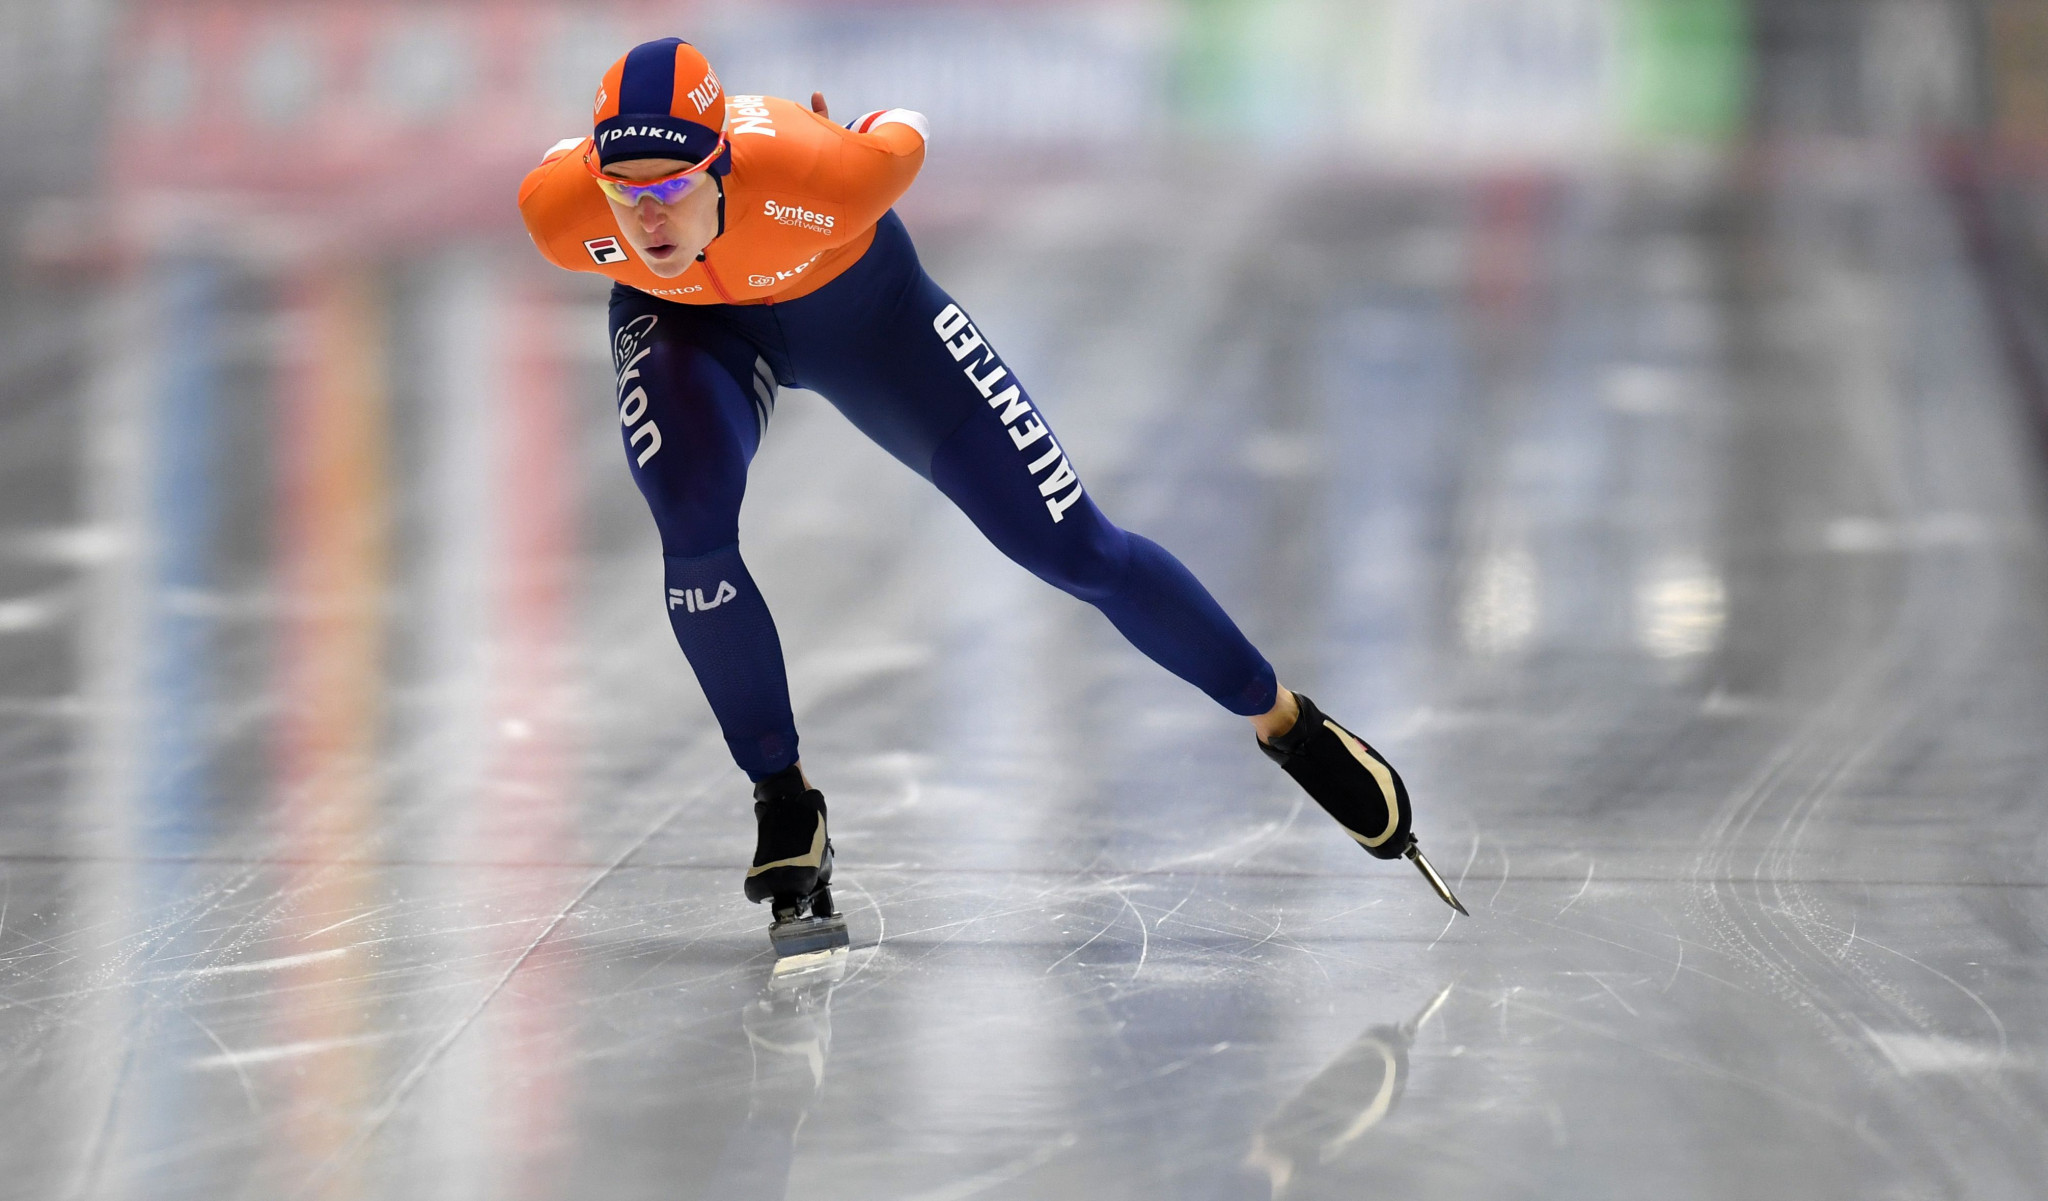 The Netherlands'  Ireen Wüst earned back-to-back 1,500m World Cup wins at the ISU Speed Skating World Cup in Tomaszów Mazowiecki ©Getty Images